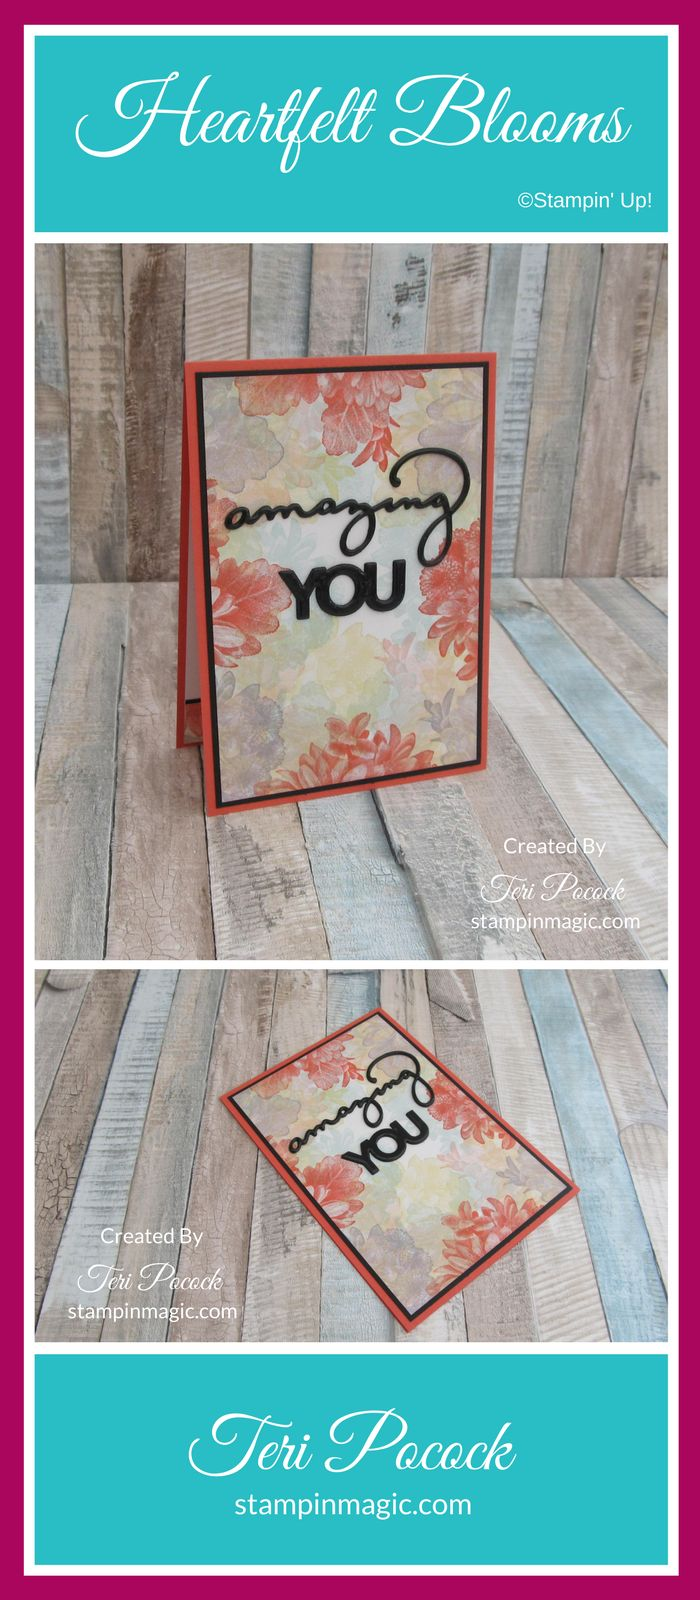 Heartfelt Blooms by Stampin Up. Created by UK Independent Demonstrator Teri Pocock. Click through for more details.#teripocock #stampinup #stampinupuk #heartfeltblooms #videotutorial